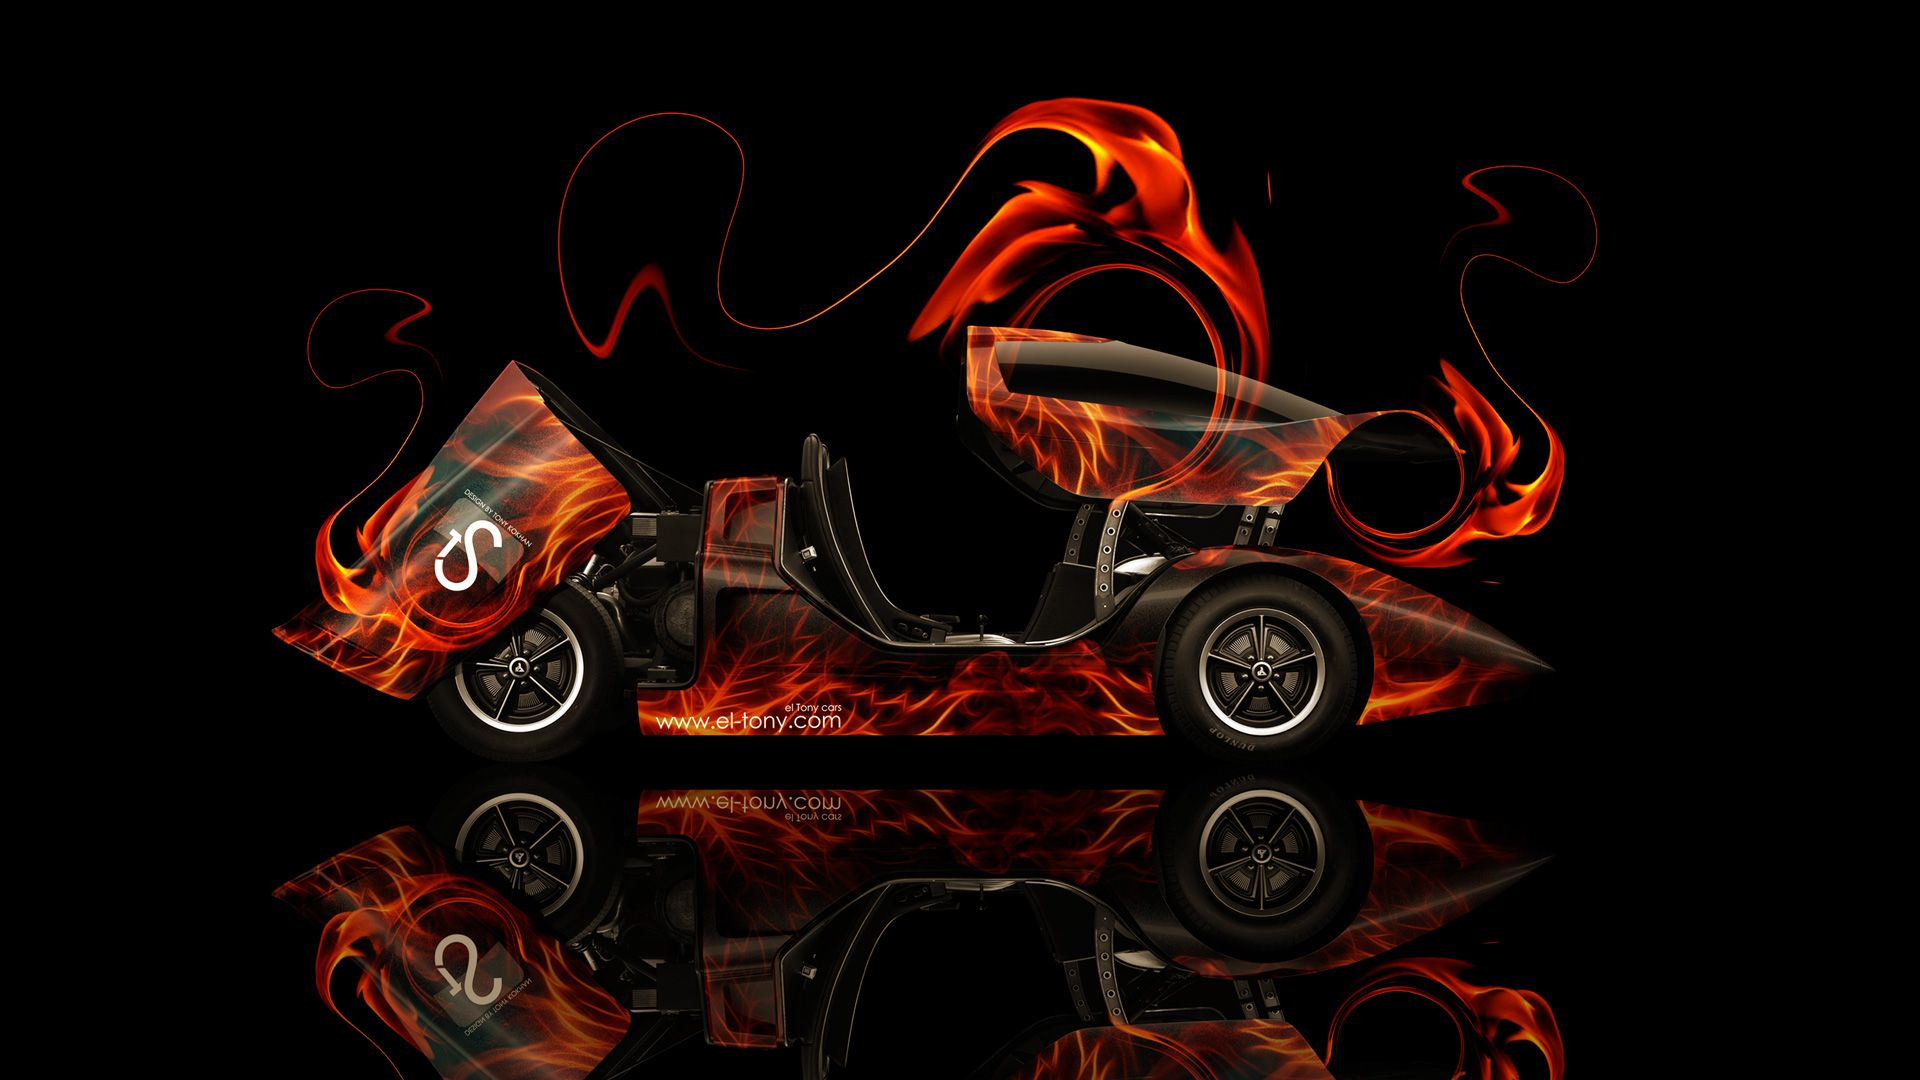 Exceptional Holden Hurricane Fire Abstract Car 2014